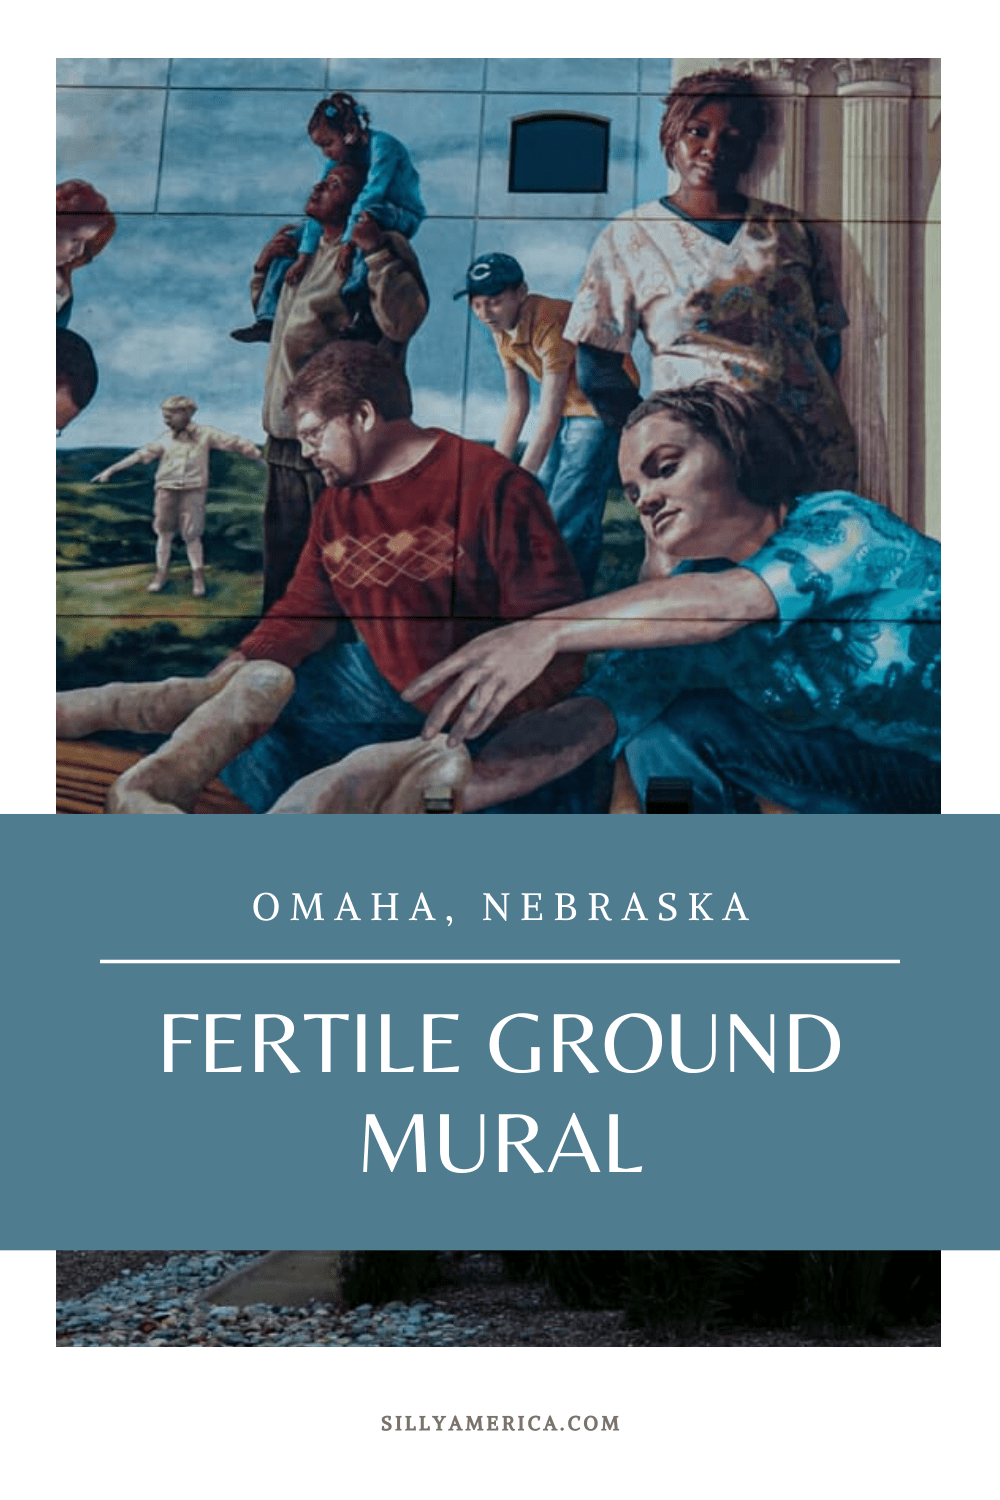 The Fertile Ground mural in Omaha, Nebraska was created by artist Meg Saligman. The 32,500 square-foot mural is one of the largest murals in the country. #NebraskaRoadsideAttractions #NebraskaRoadsideAttraction #RoadsideAttractions #RoadsideAttraction #RoadTrip #NebraskaRoadTrip #ThingsToDoInNebraska #NebraskaTravelRoadTrips #ThingsToSeeInNebraska #StreetArt #mural